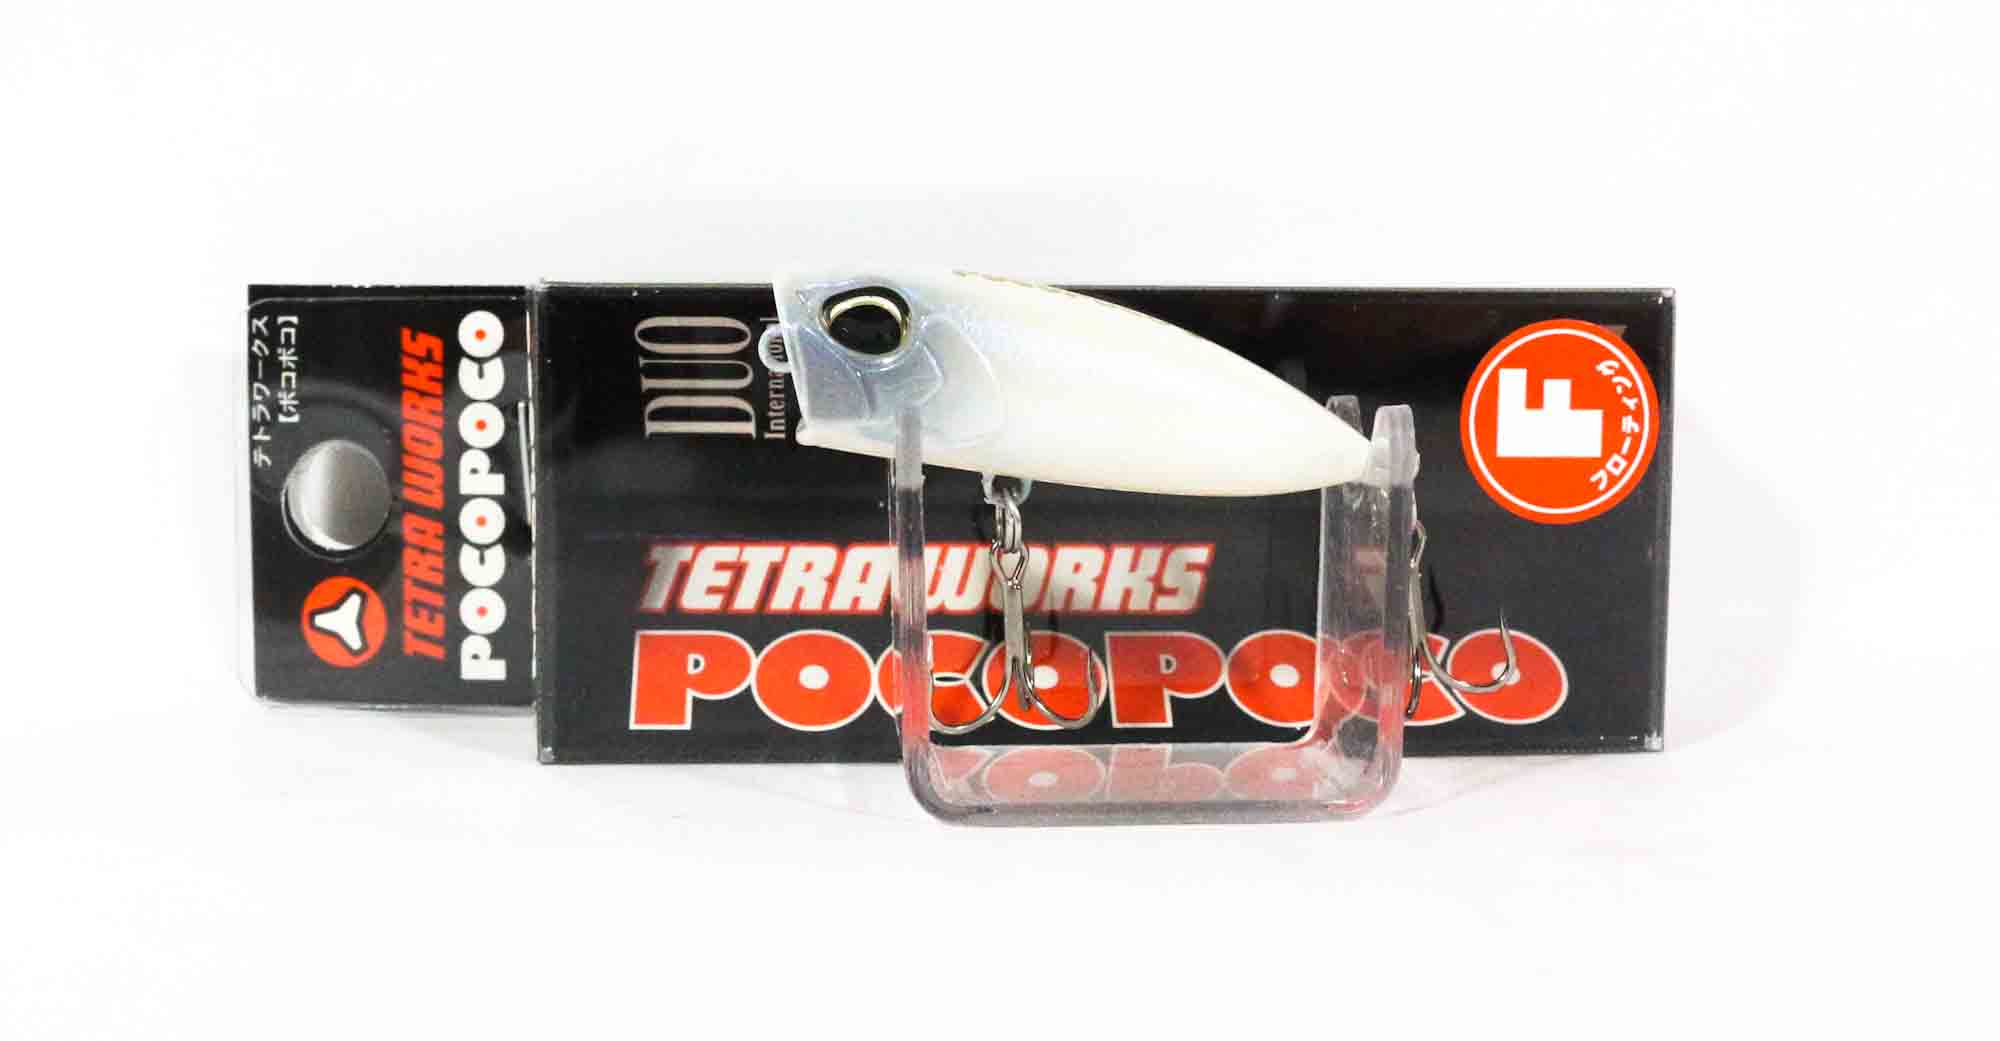 Duo Tetra Works Poco Poco Mini Popper 40 mm Floating Lure ACC3008 (6606)